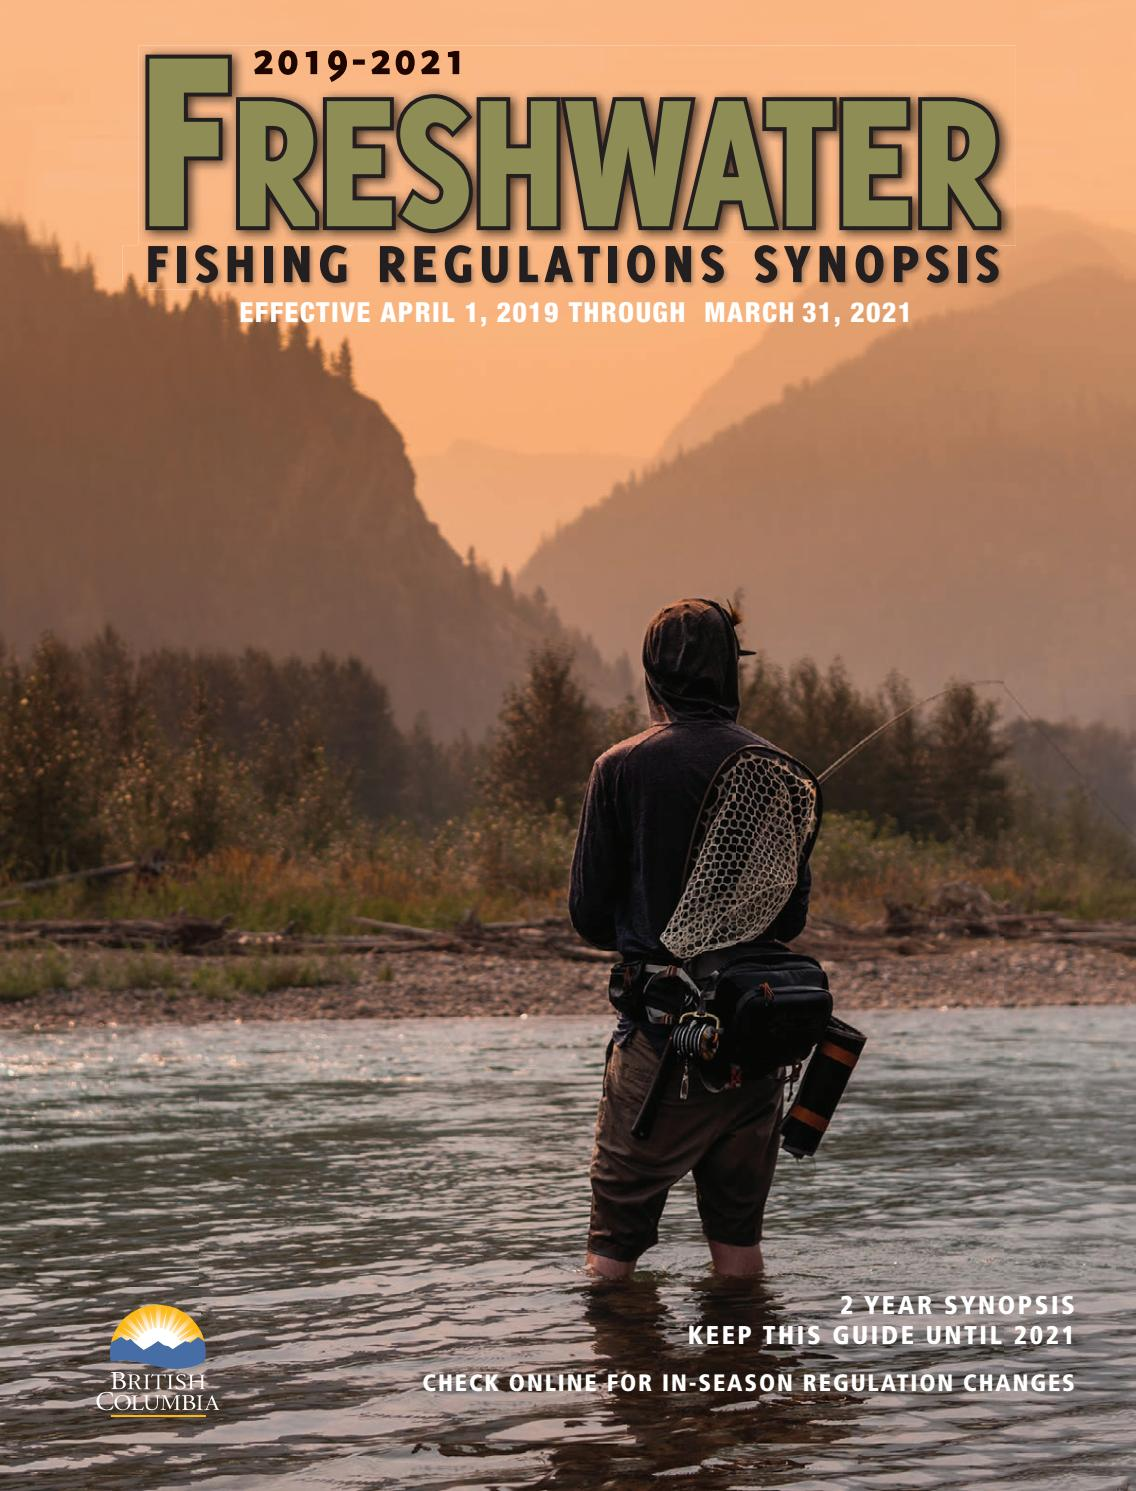 Special Features - Freshwater Fishing Regulations Synopsis